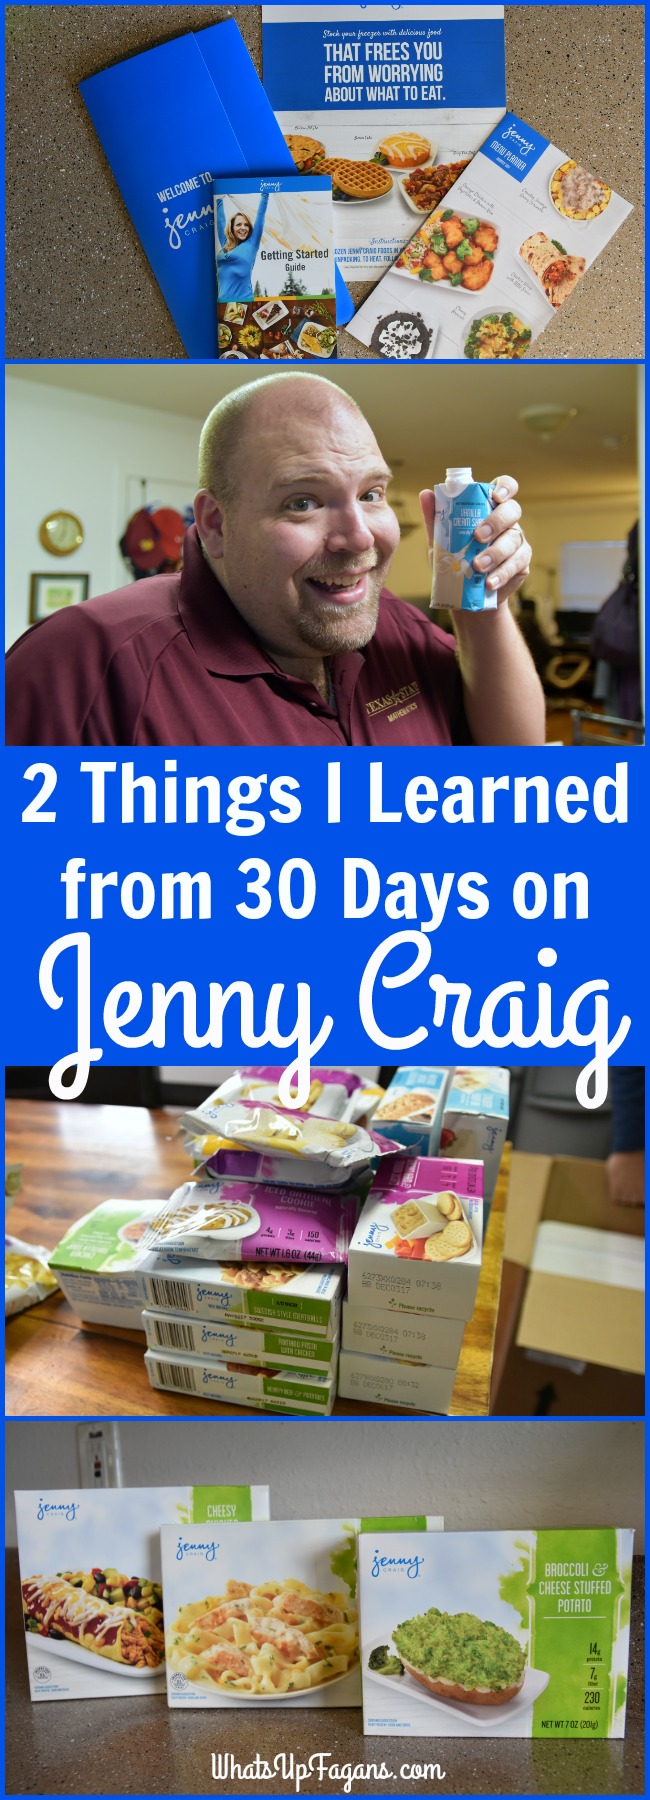 Jenny Craig Program | Weight Loss | Dieting | Diet | Portioned Food | Meals and Snacks Delivery